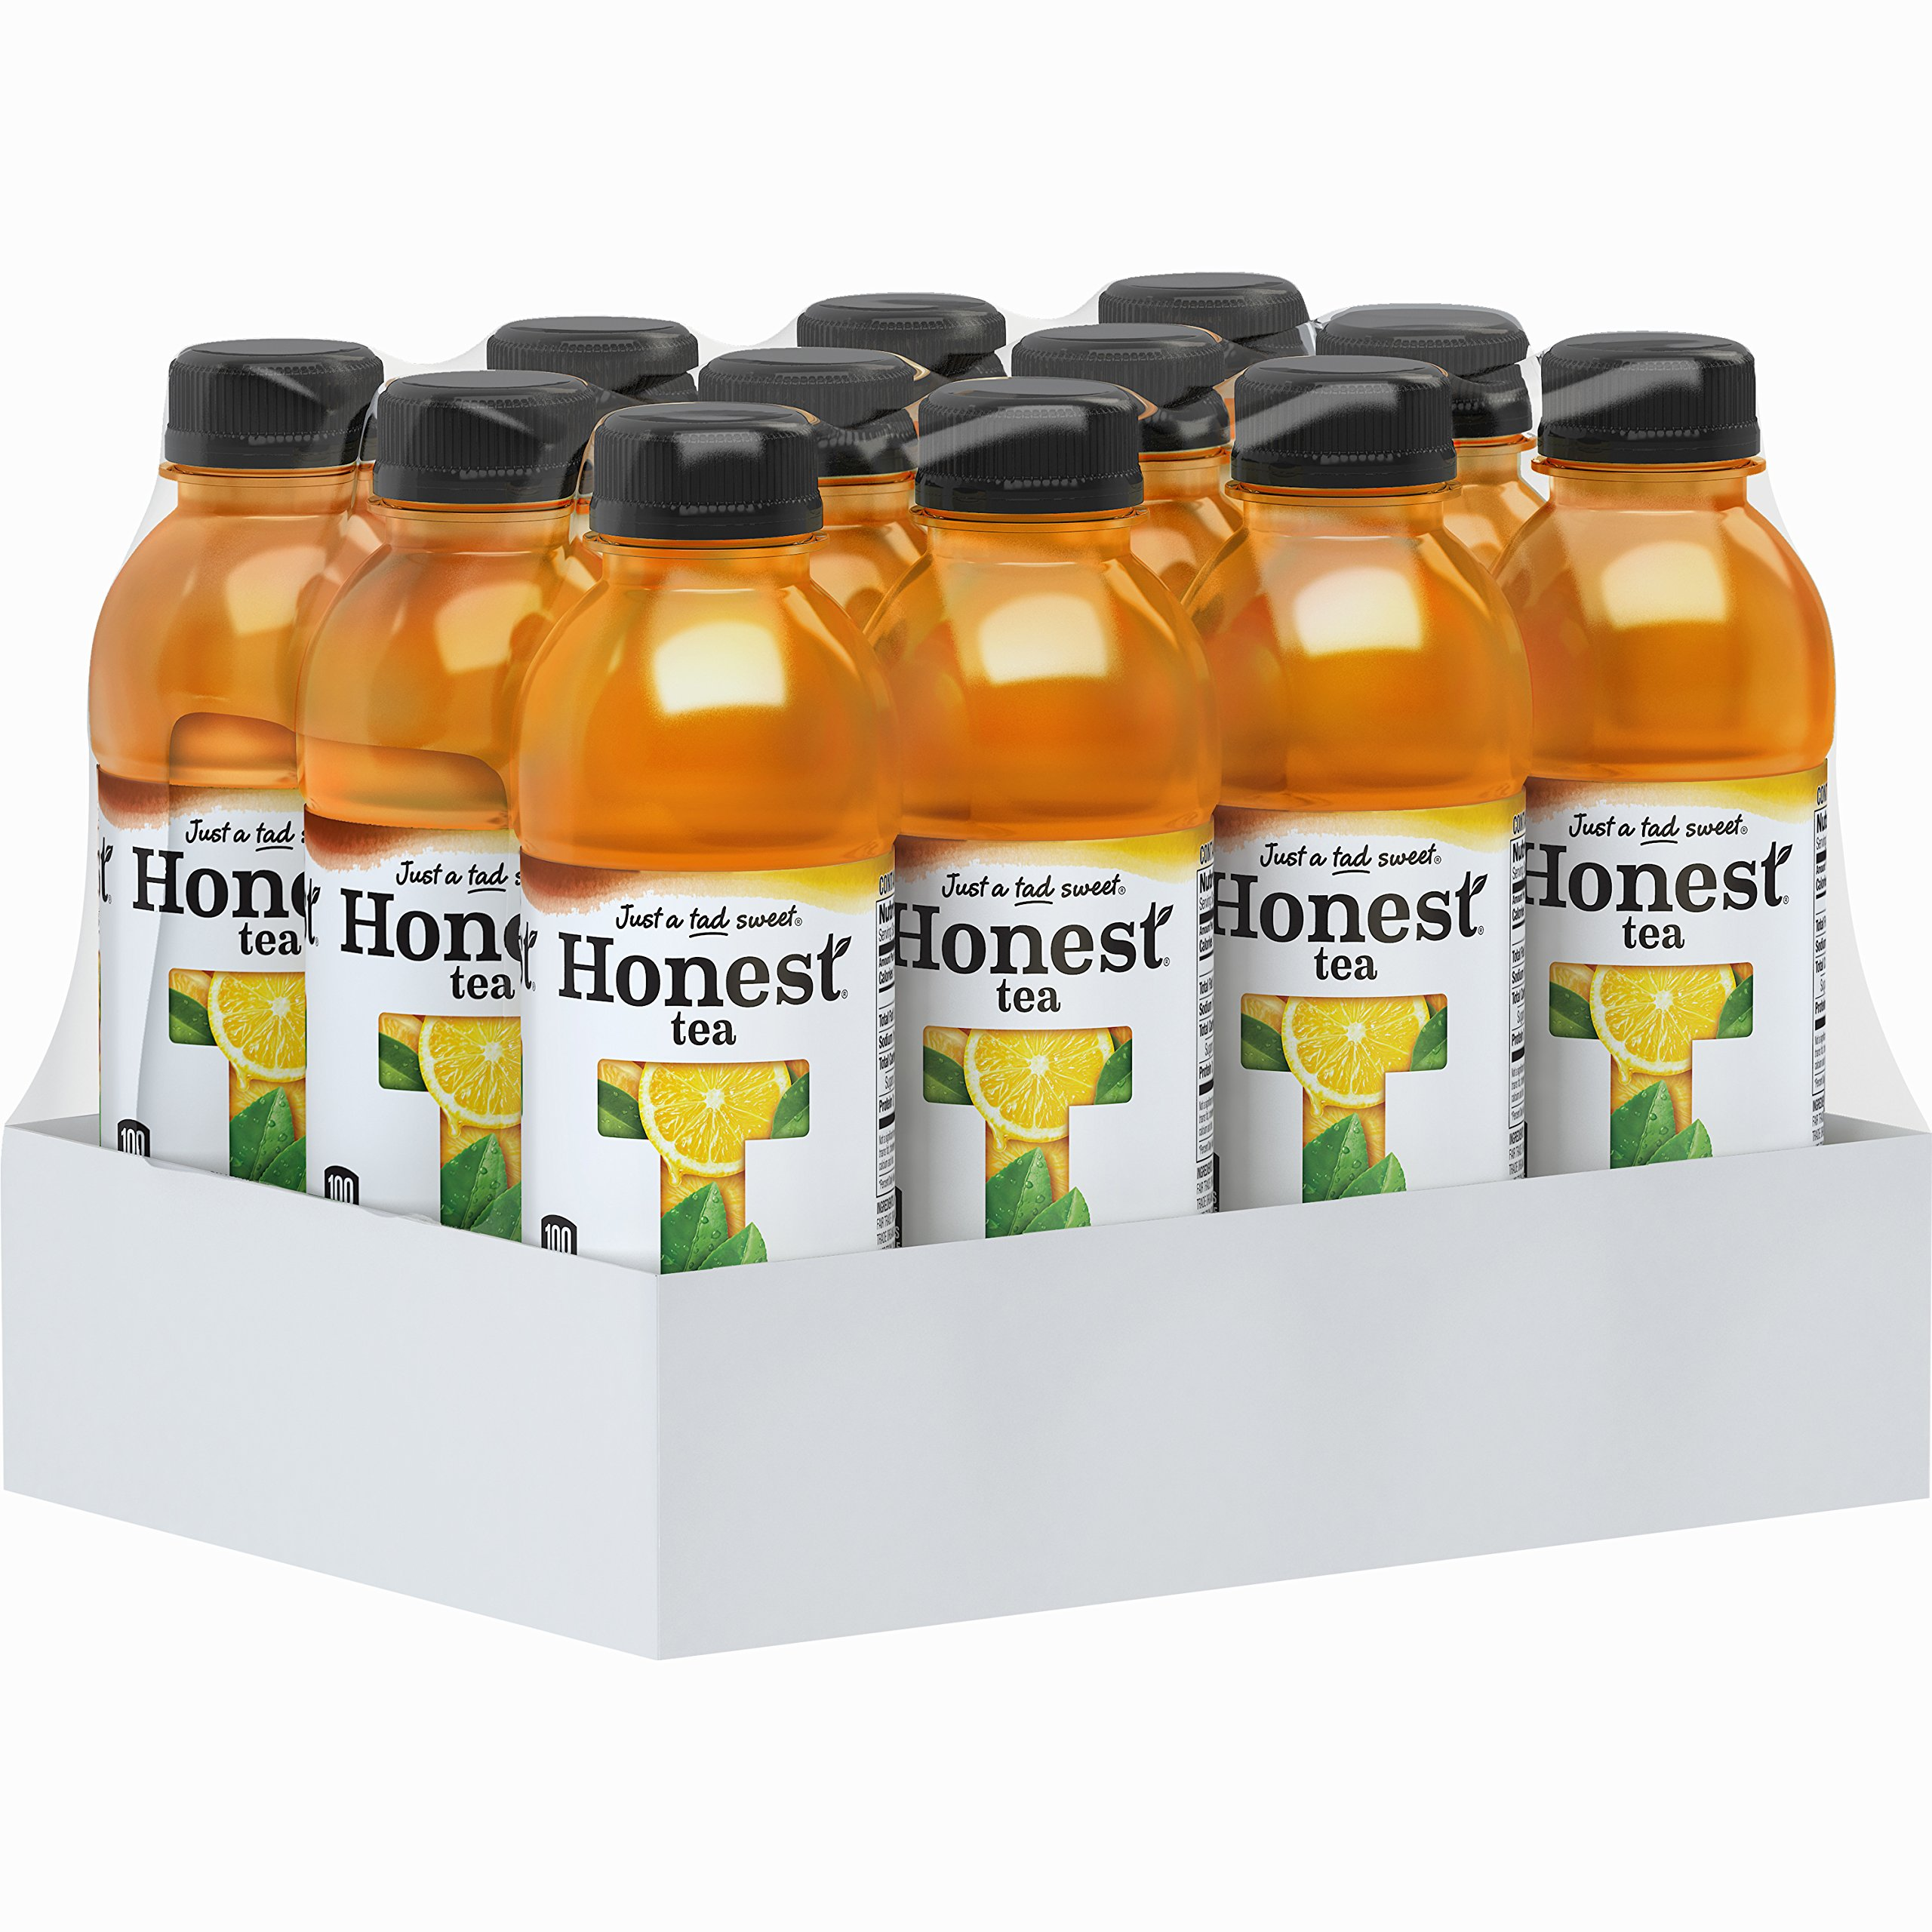 Honest Tea Organic Fair Trade Half Tea & Half Lemonade Gluten Free, 16.9 Fl. Oz, 12 Pack by Honest Tea